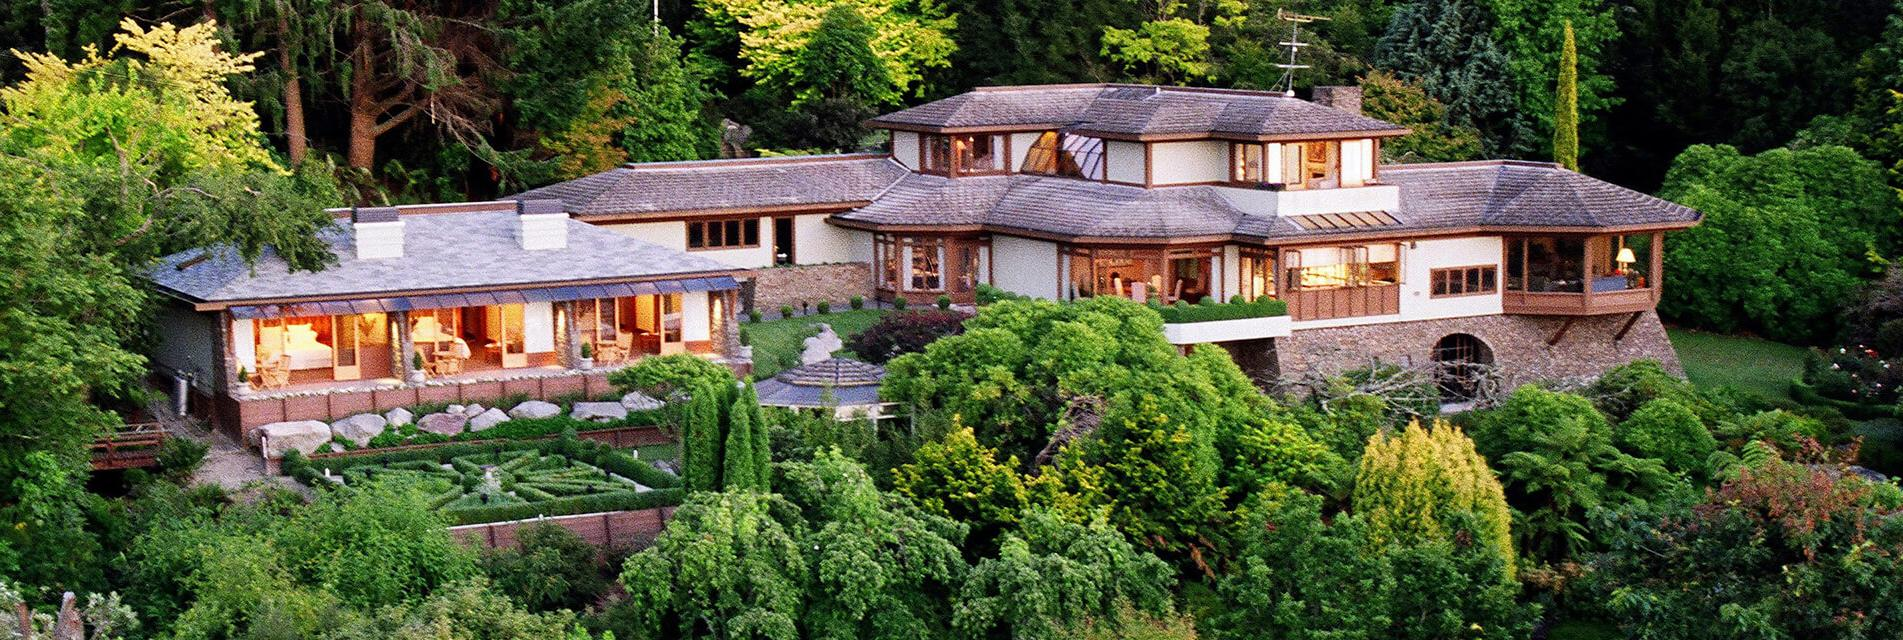 Home luxury lodges of new zealand experience new for New zealand mansions for sale